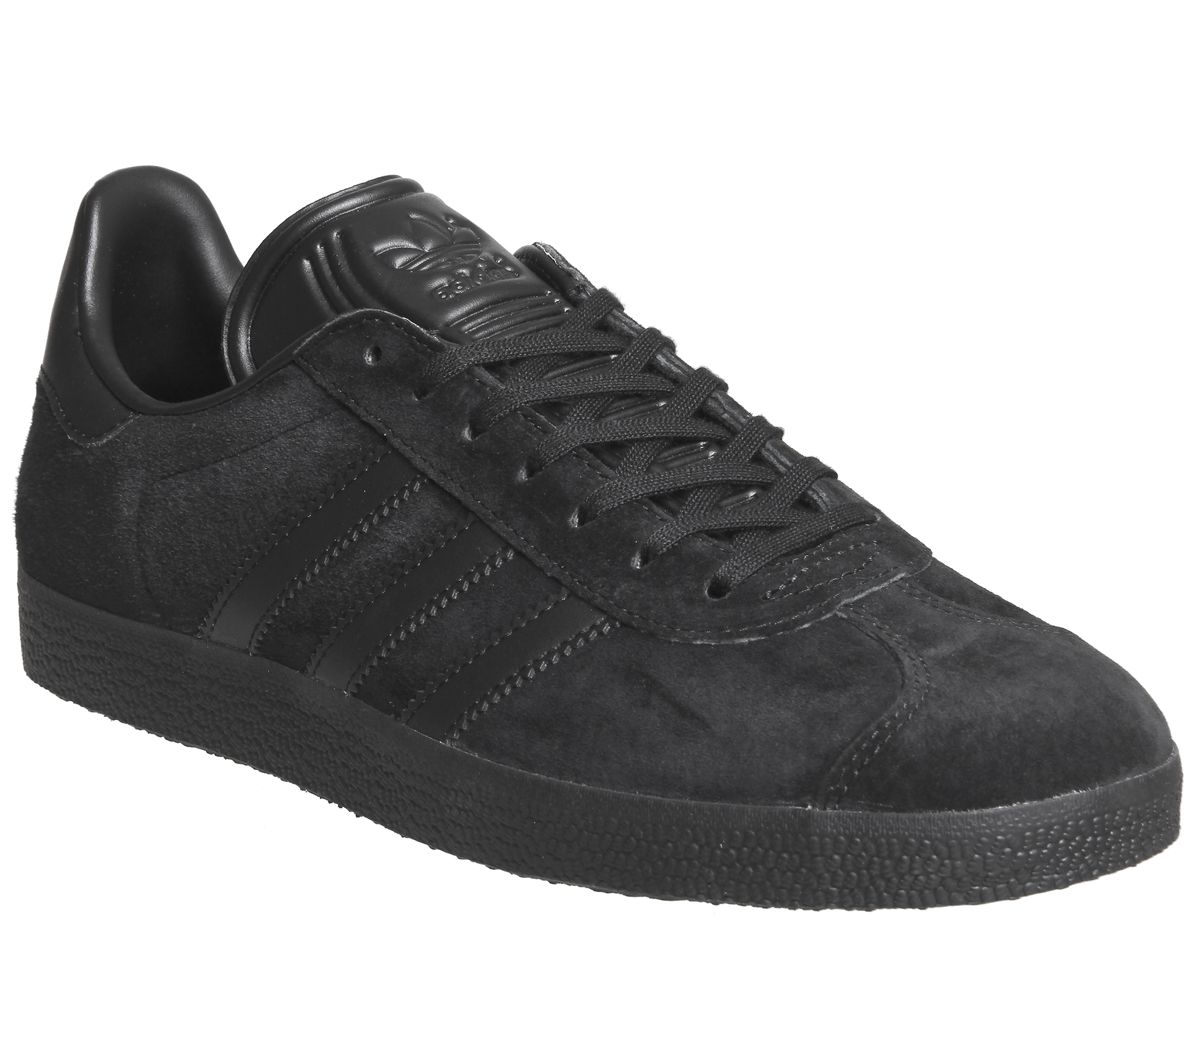 new styles 54123 5d00a adidas Gazelle Trainers Core Black Core Black - Unisex Sports